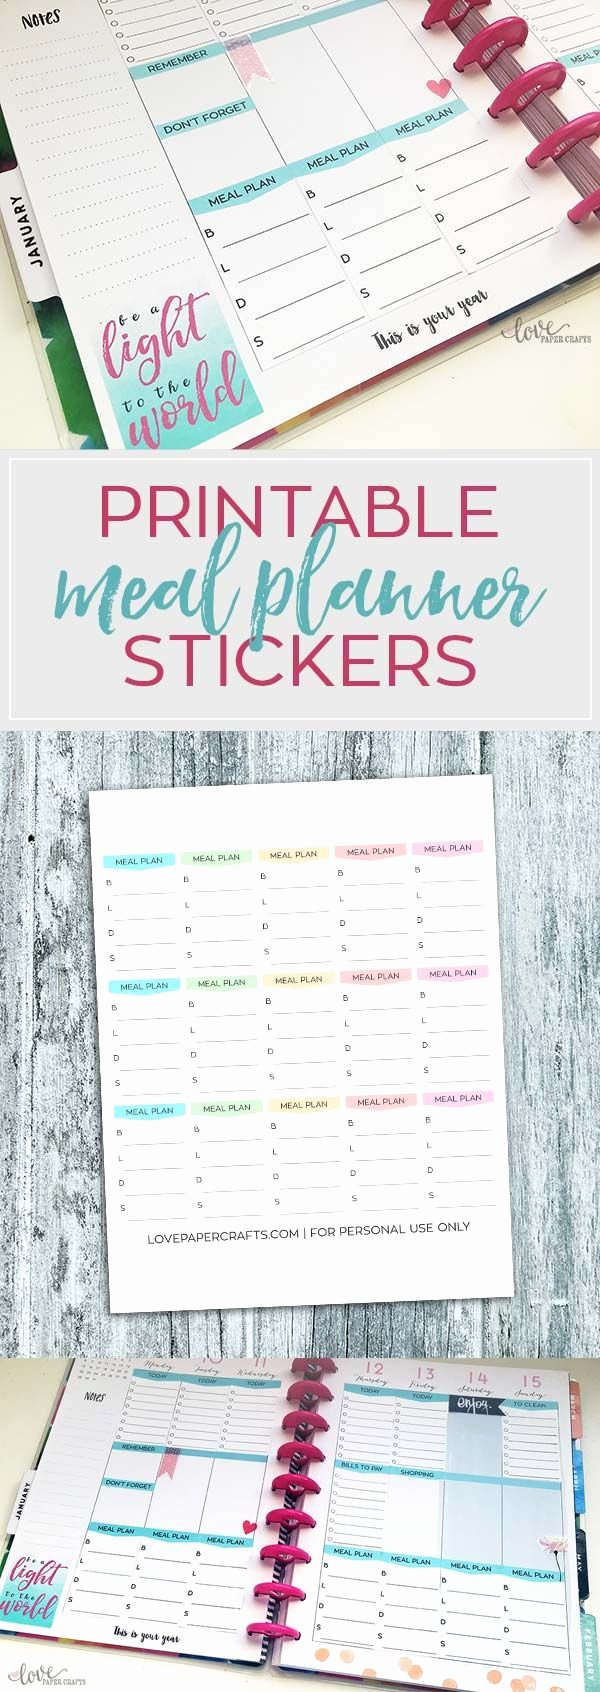 Happy Planner Sticker Template New 25 Best Ideas About Meal Planning Templates On Pinterest